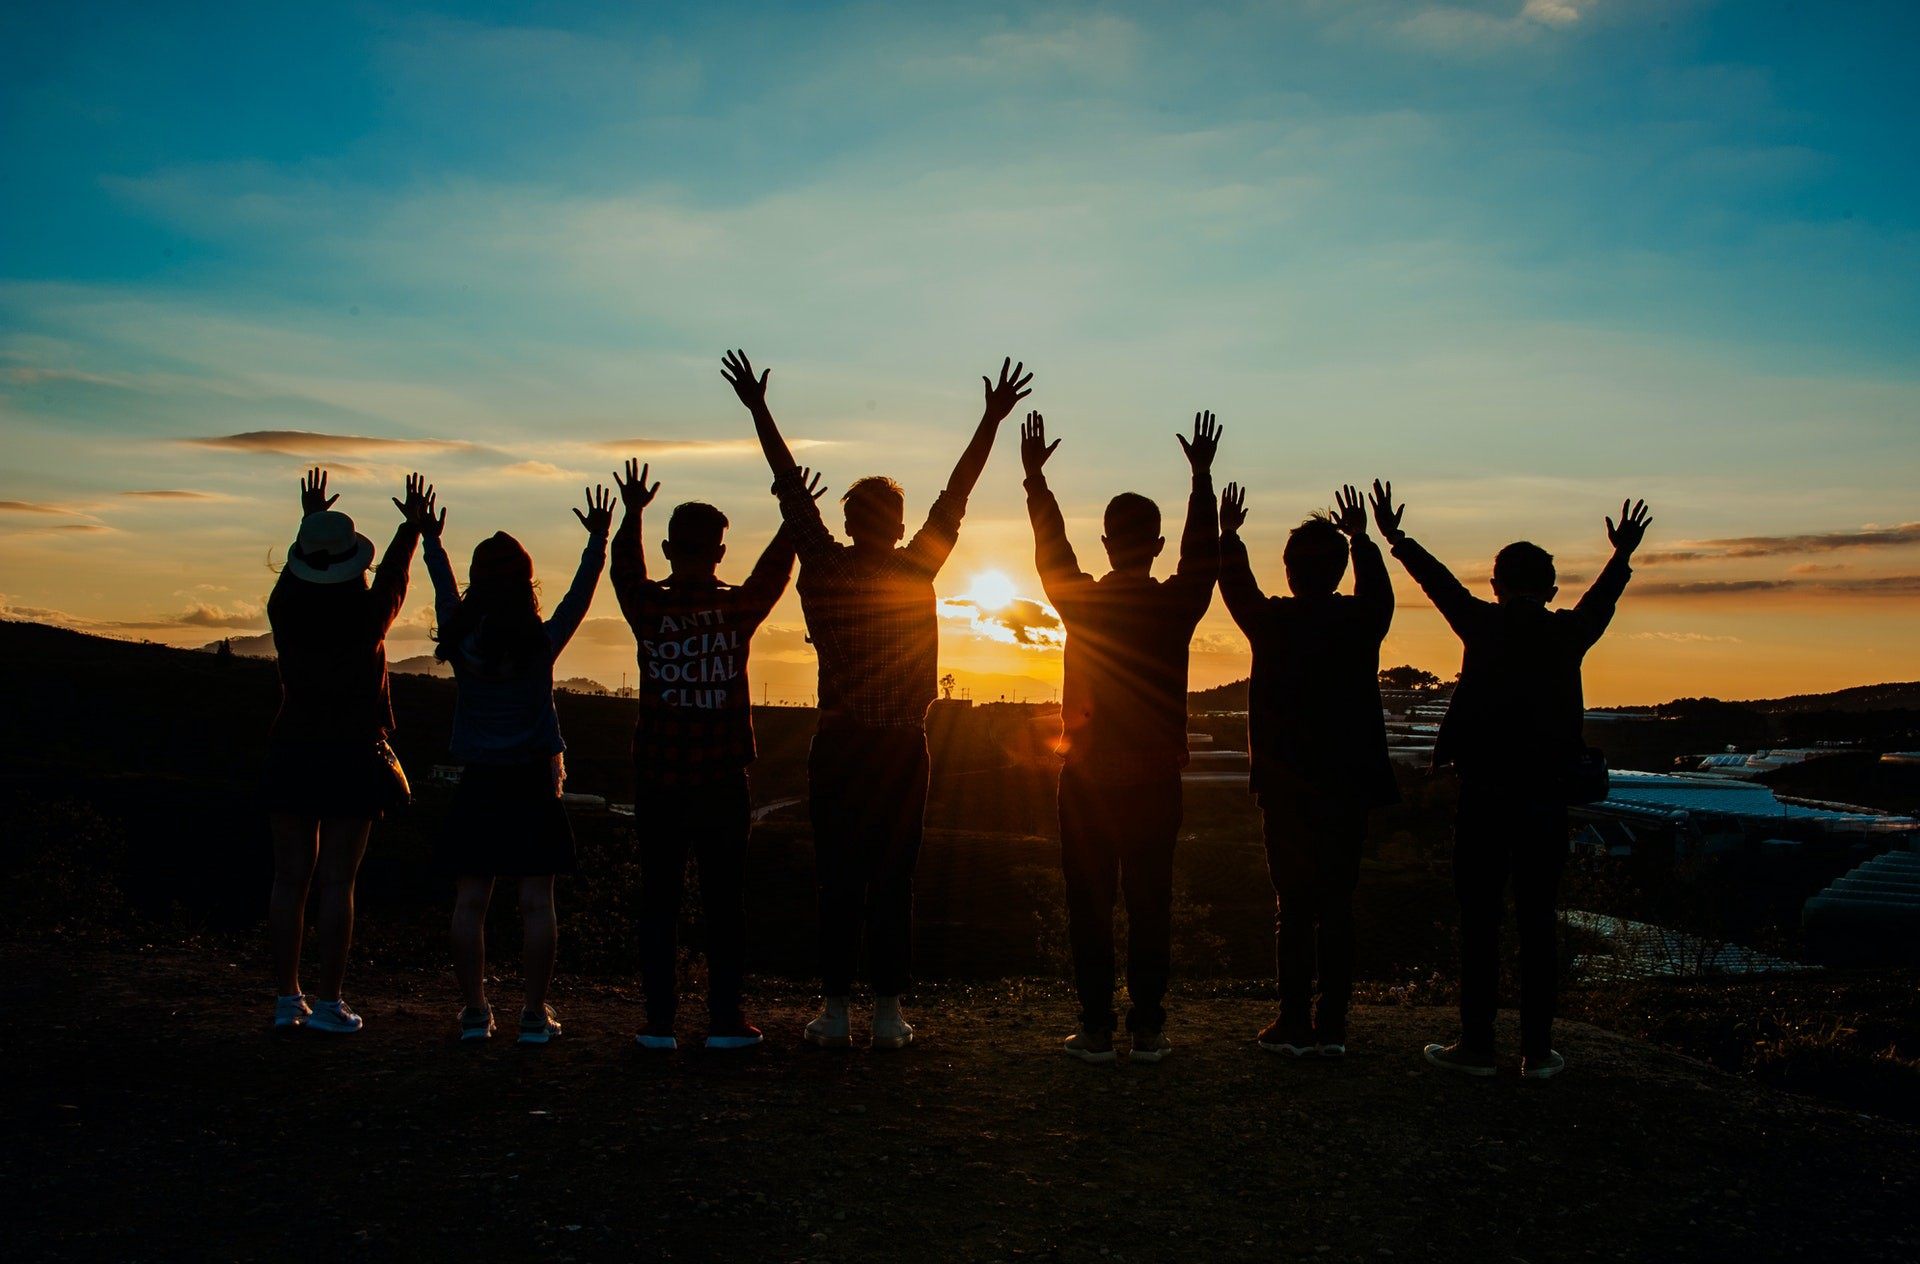 A group of people in front of a sunset cheering